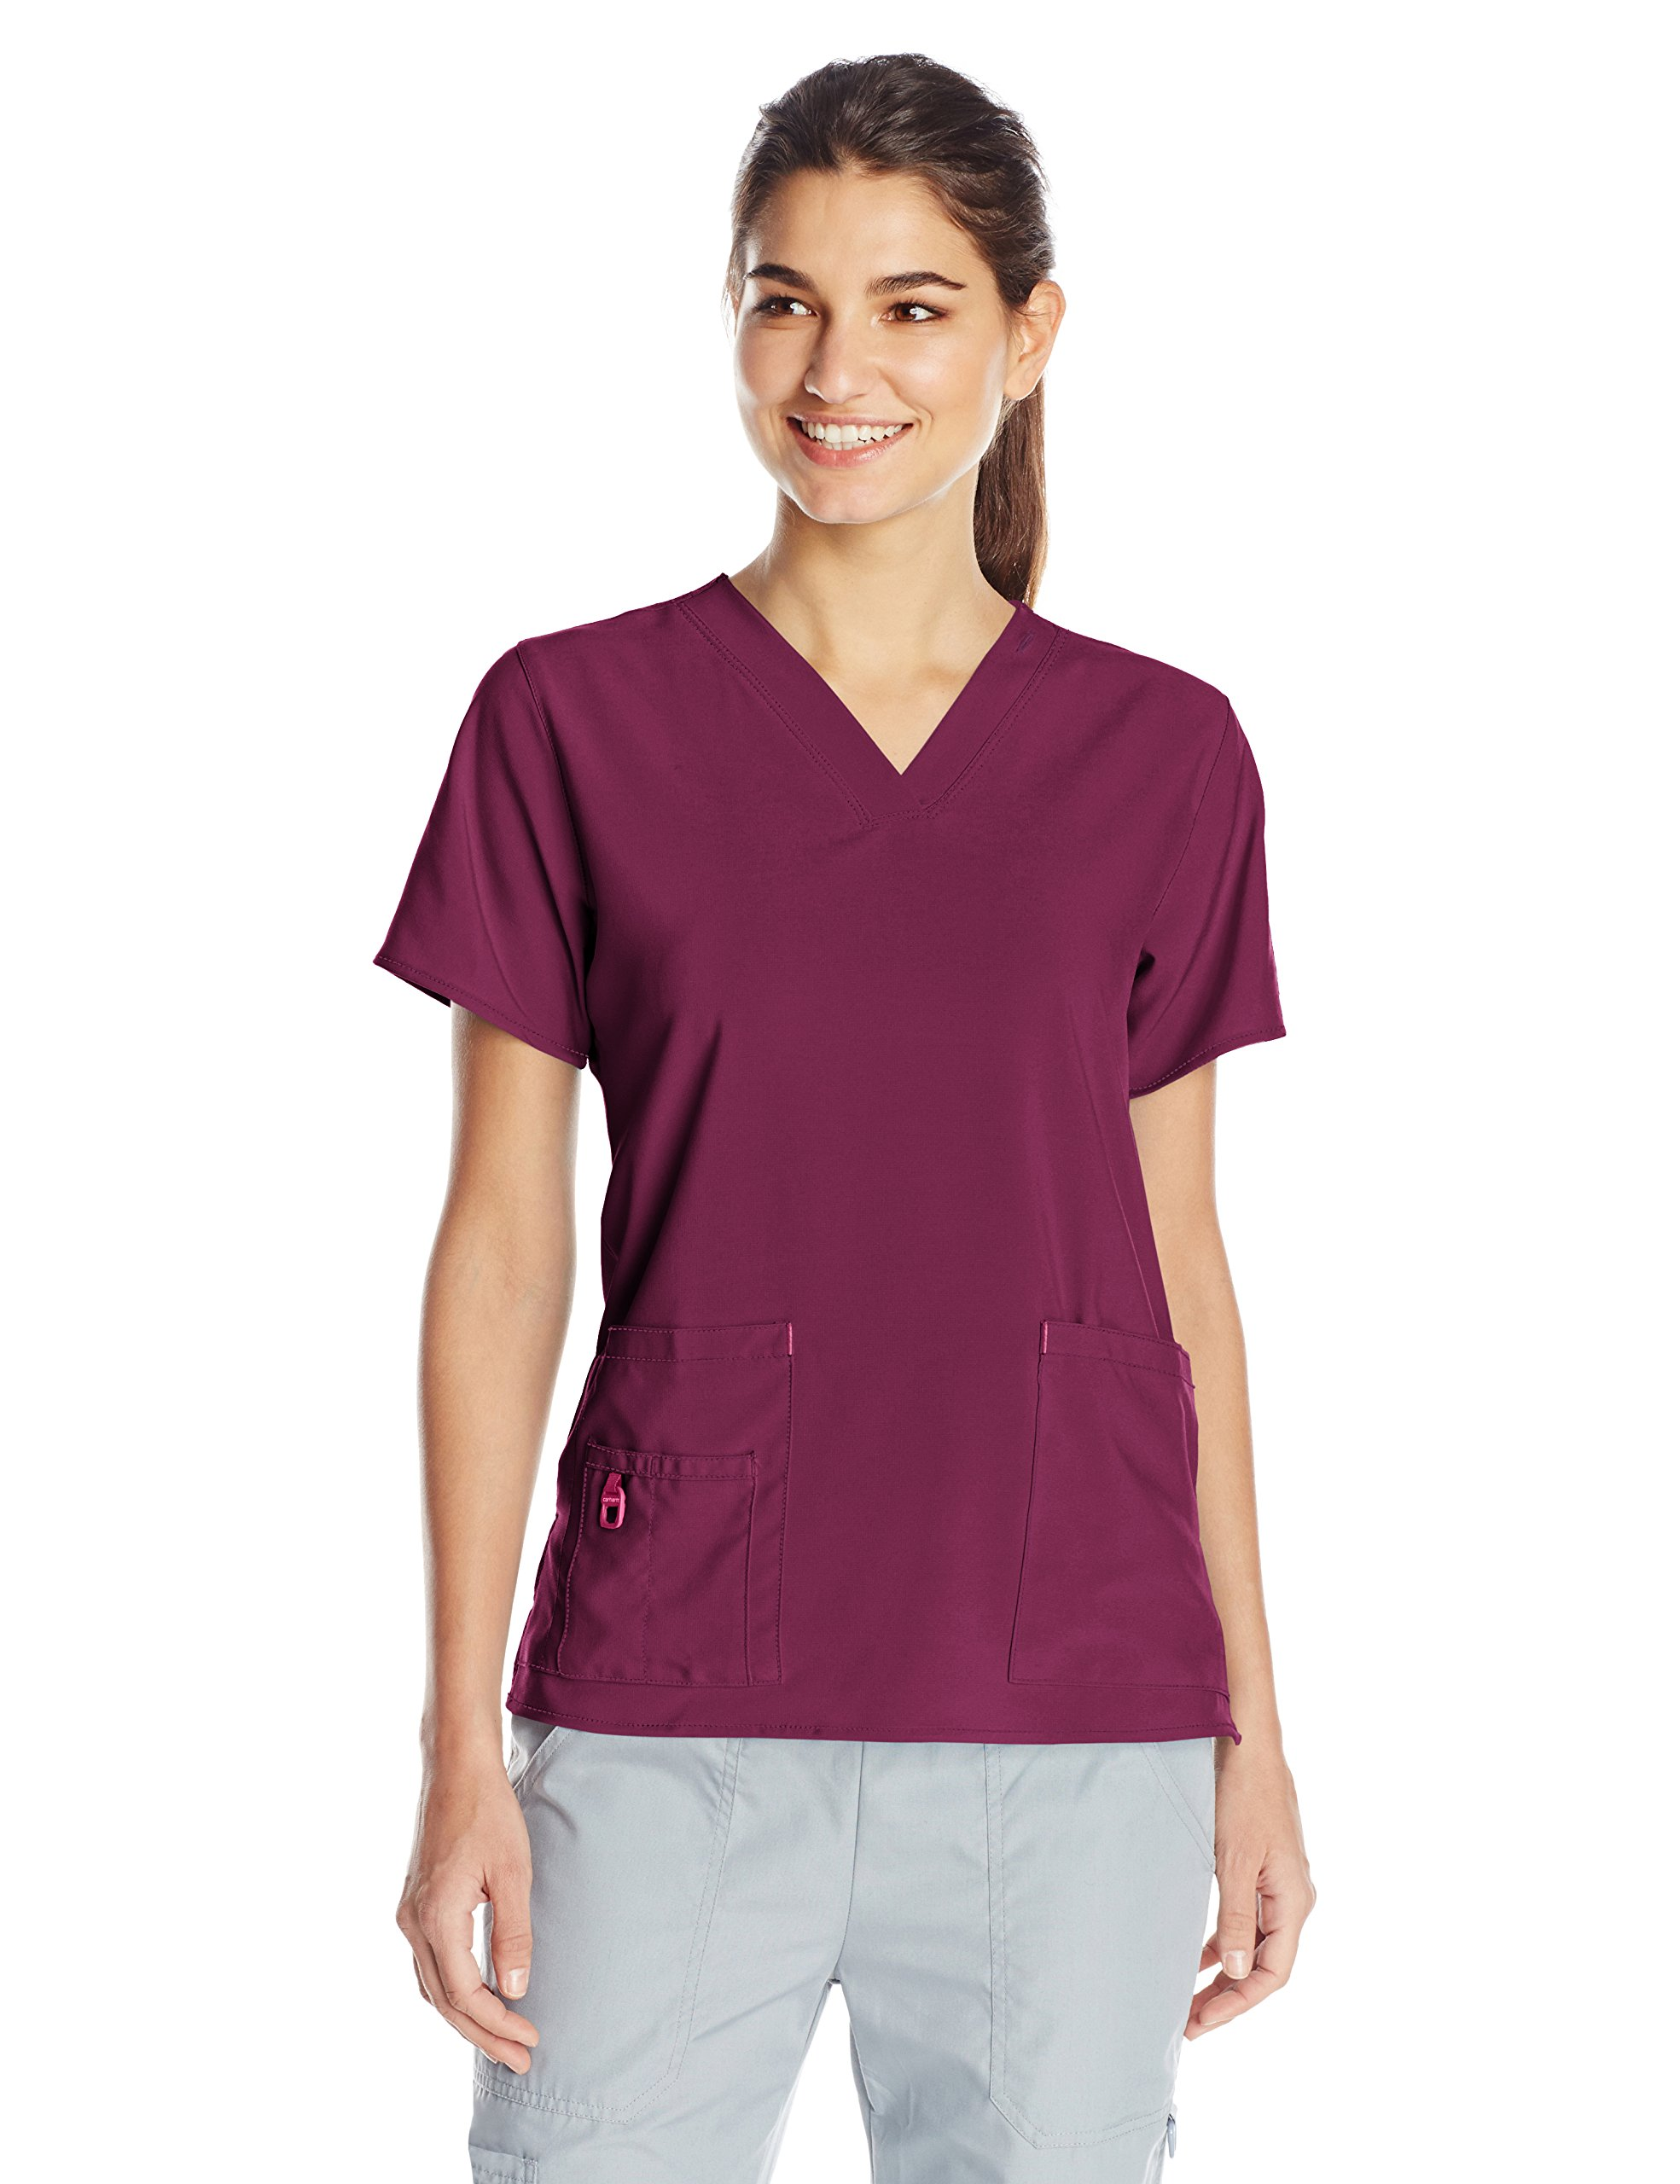 Carhartt Women's Cross-Flex Media Scrub Top, Wine, Large